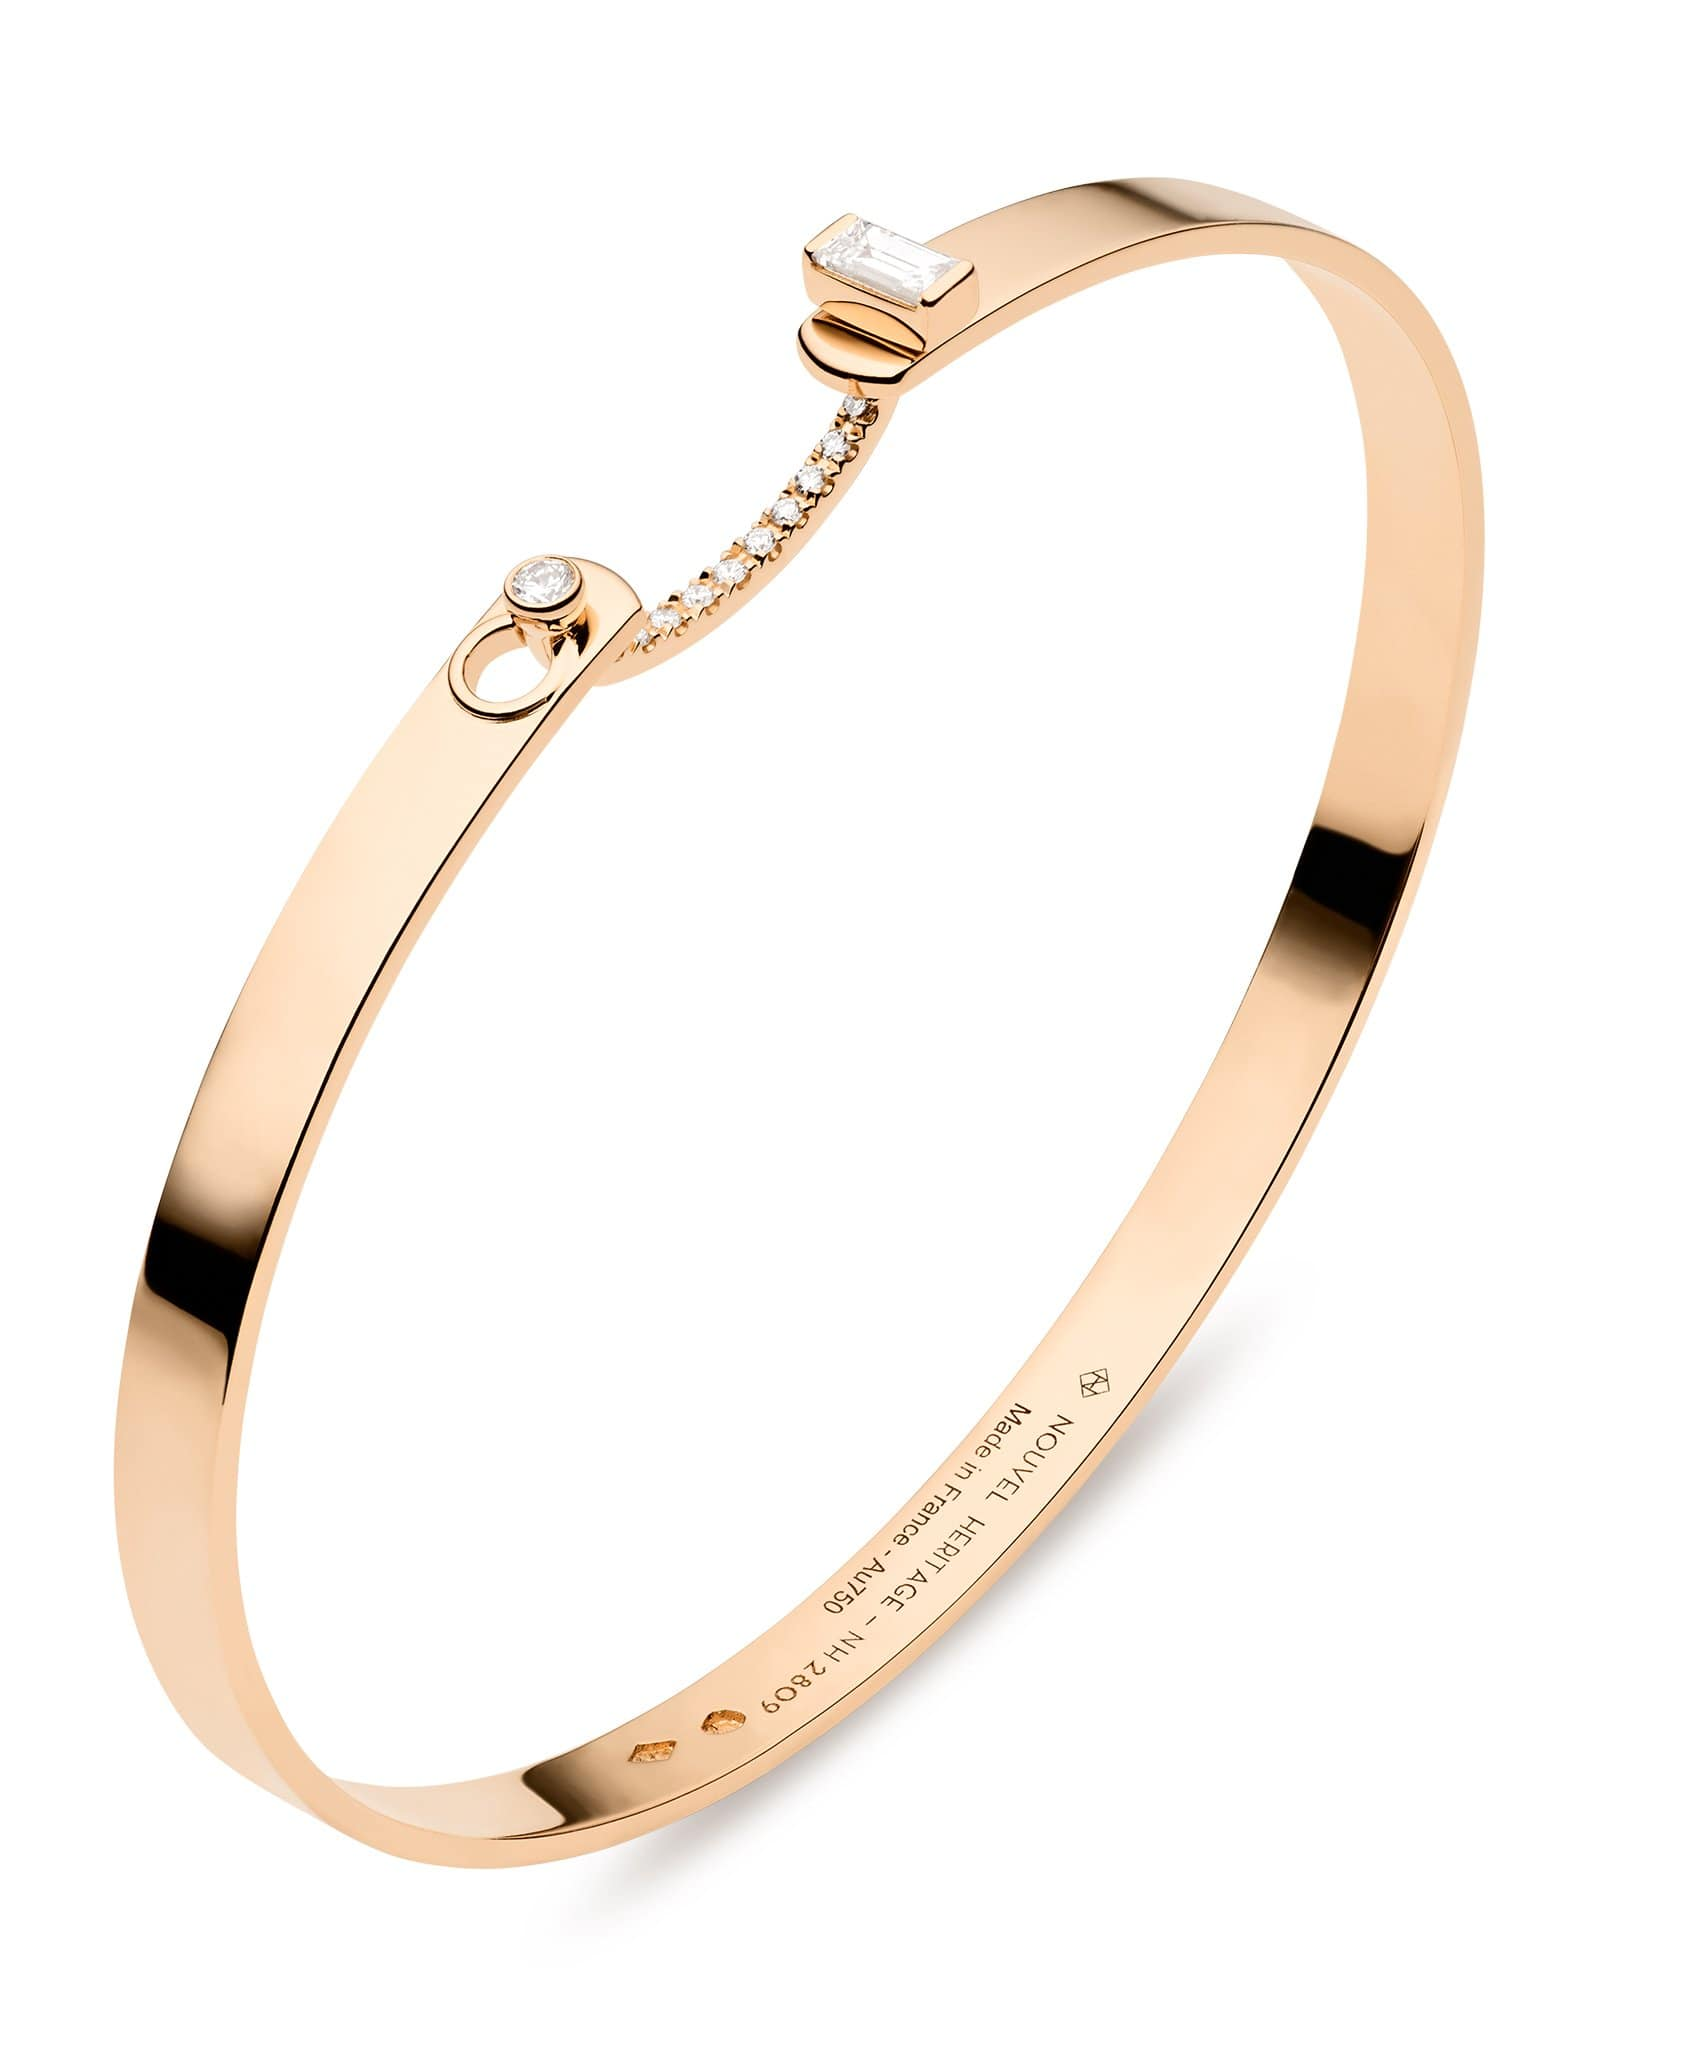 Dinner Date Mood Bangle: Discover Luxury Fine Jewelry | Nouvel Heritage || Rose Gold